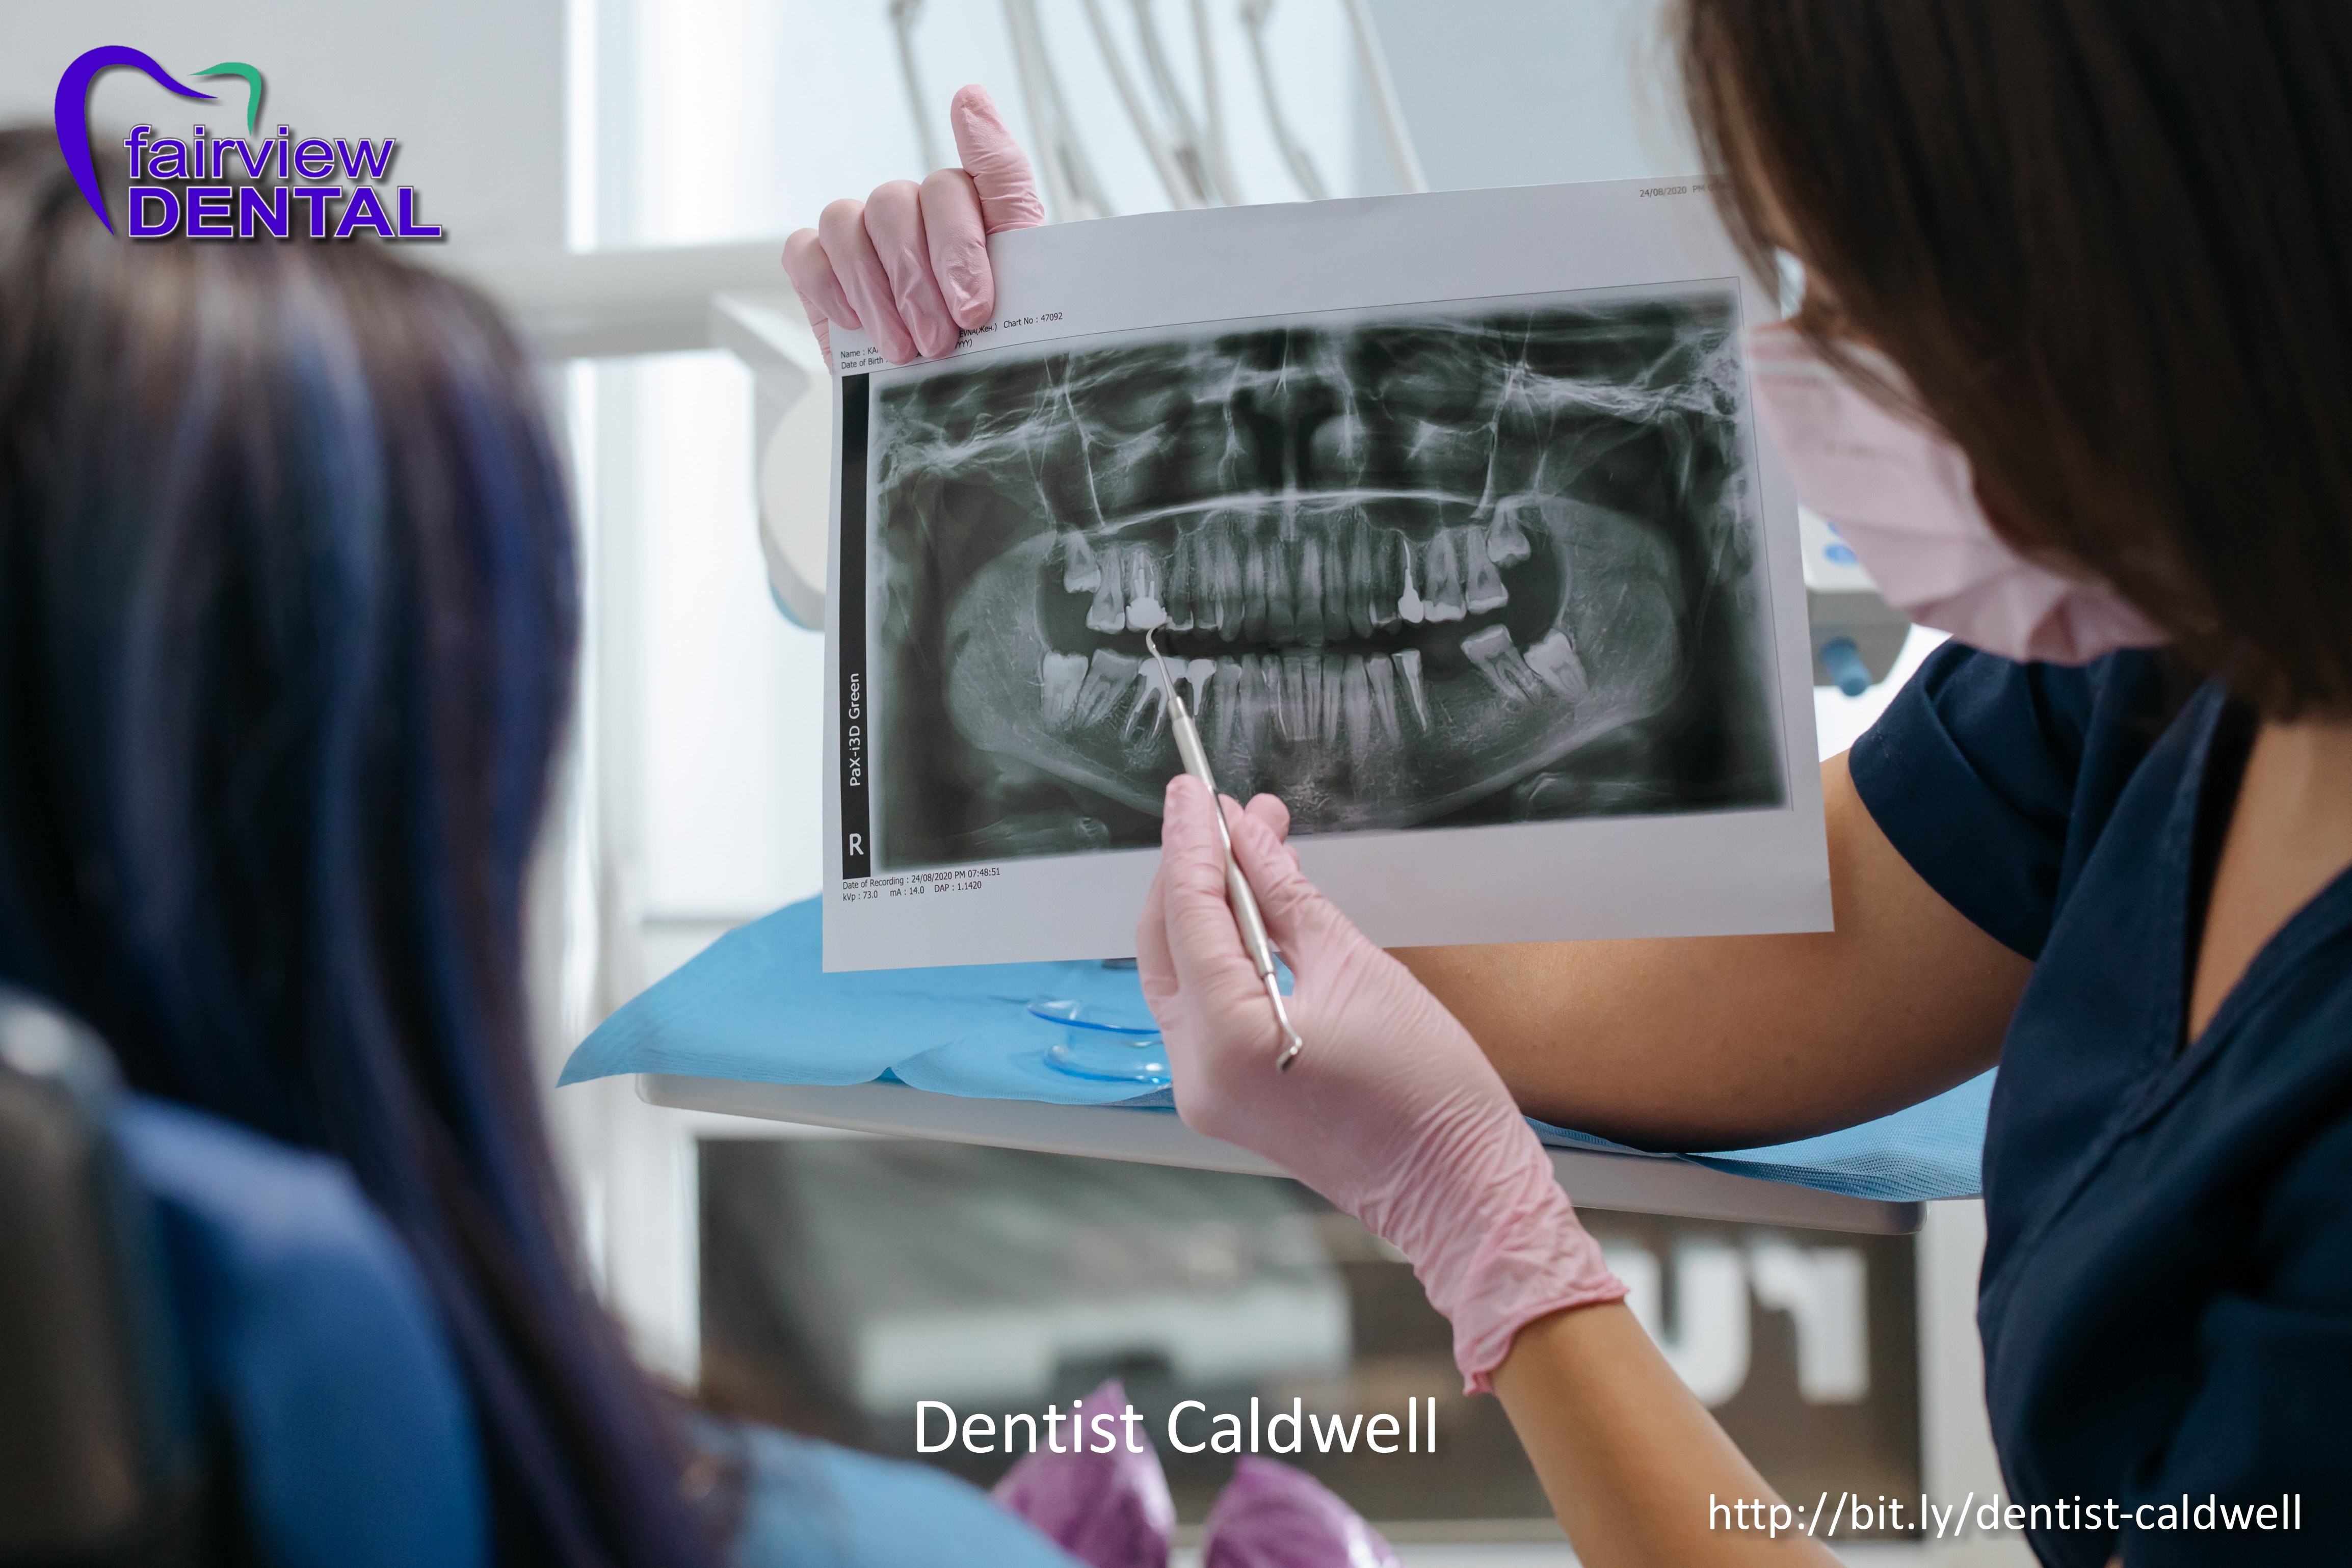 Fairview Dental Outlines the Benefits of Family Dentistry